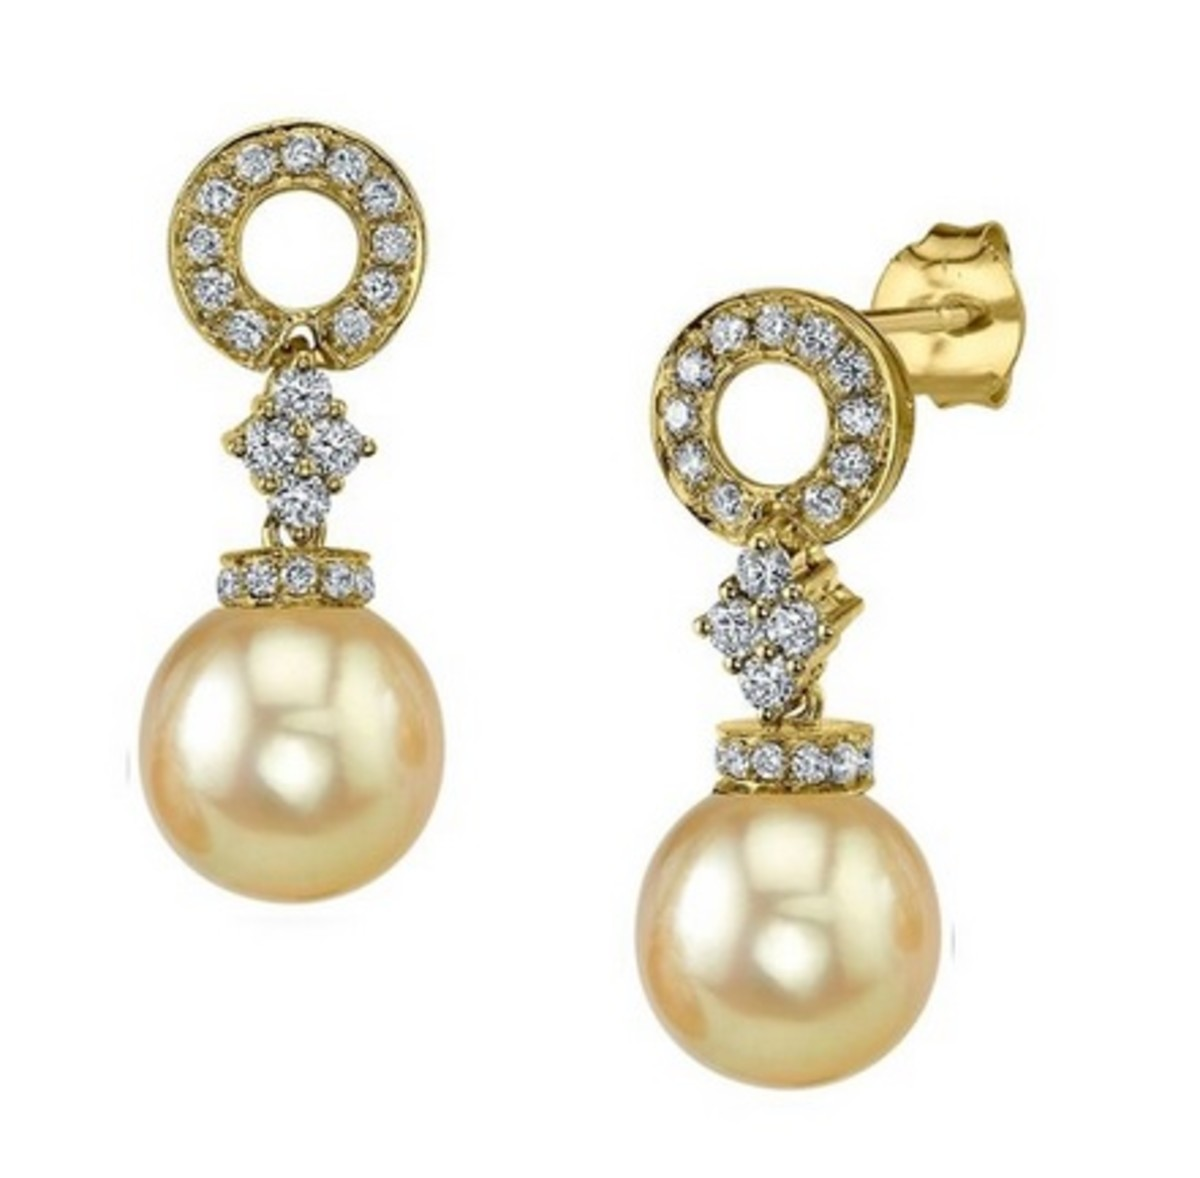 Pearl earrings like royalty would wear